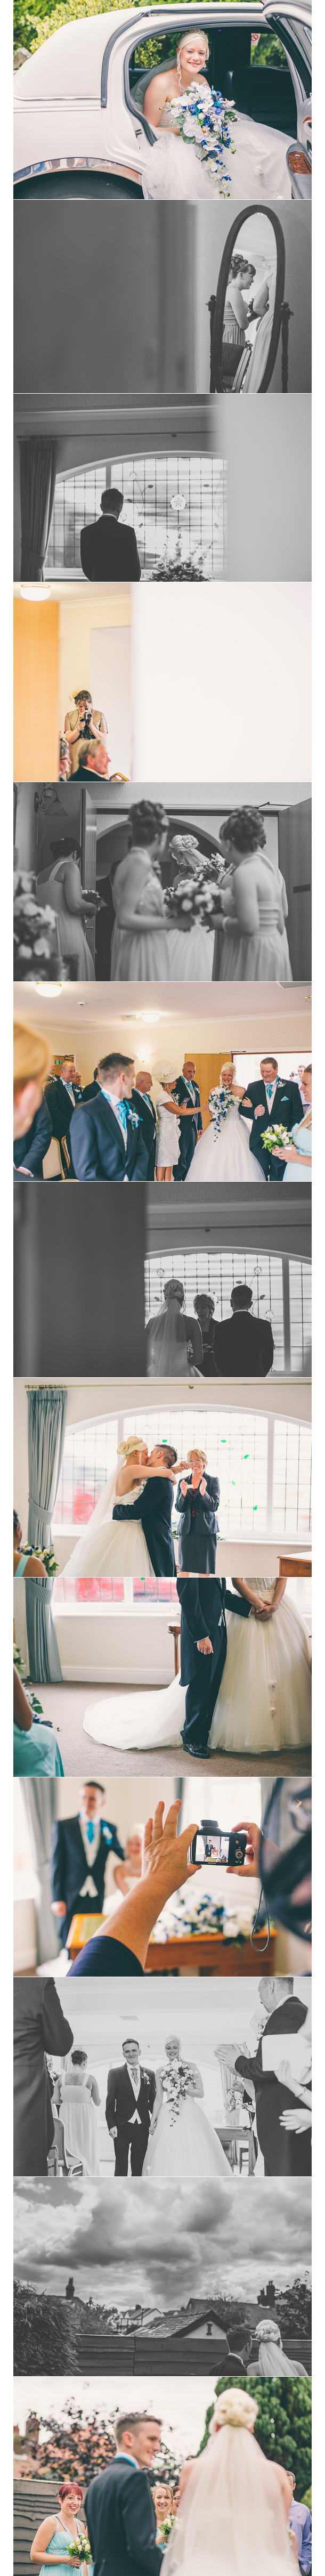 NeilJacksonPhotographicScarboroughYorkYorkshireWeddingPhotographerKirsty&RyanCrownSpaHotelWeddingScarboroughRegistryOfficeScarboroughBlog2